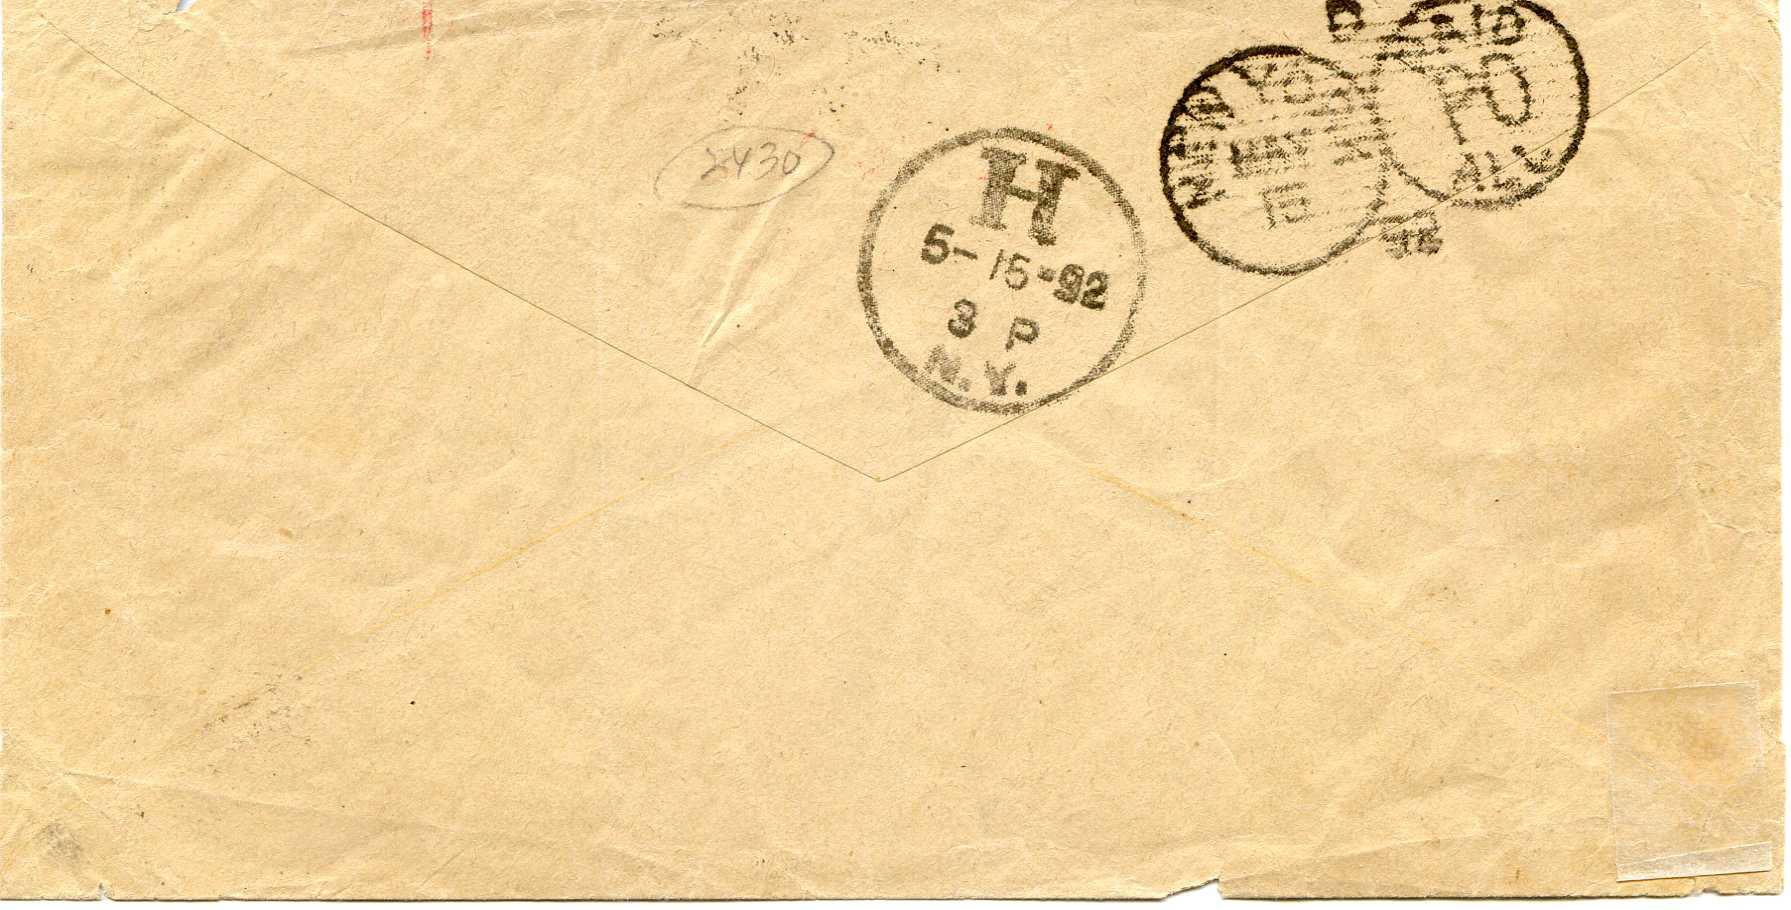 Lot 21 - Holyland - Forerunners  -  JF-B Philatelie Specialized sale of stamps and letters from Israel